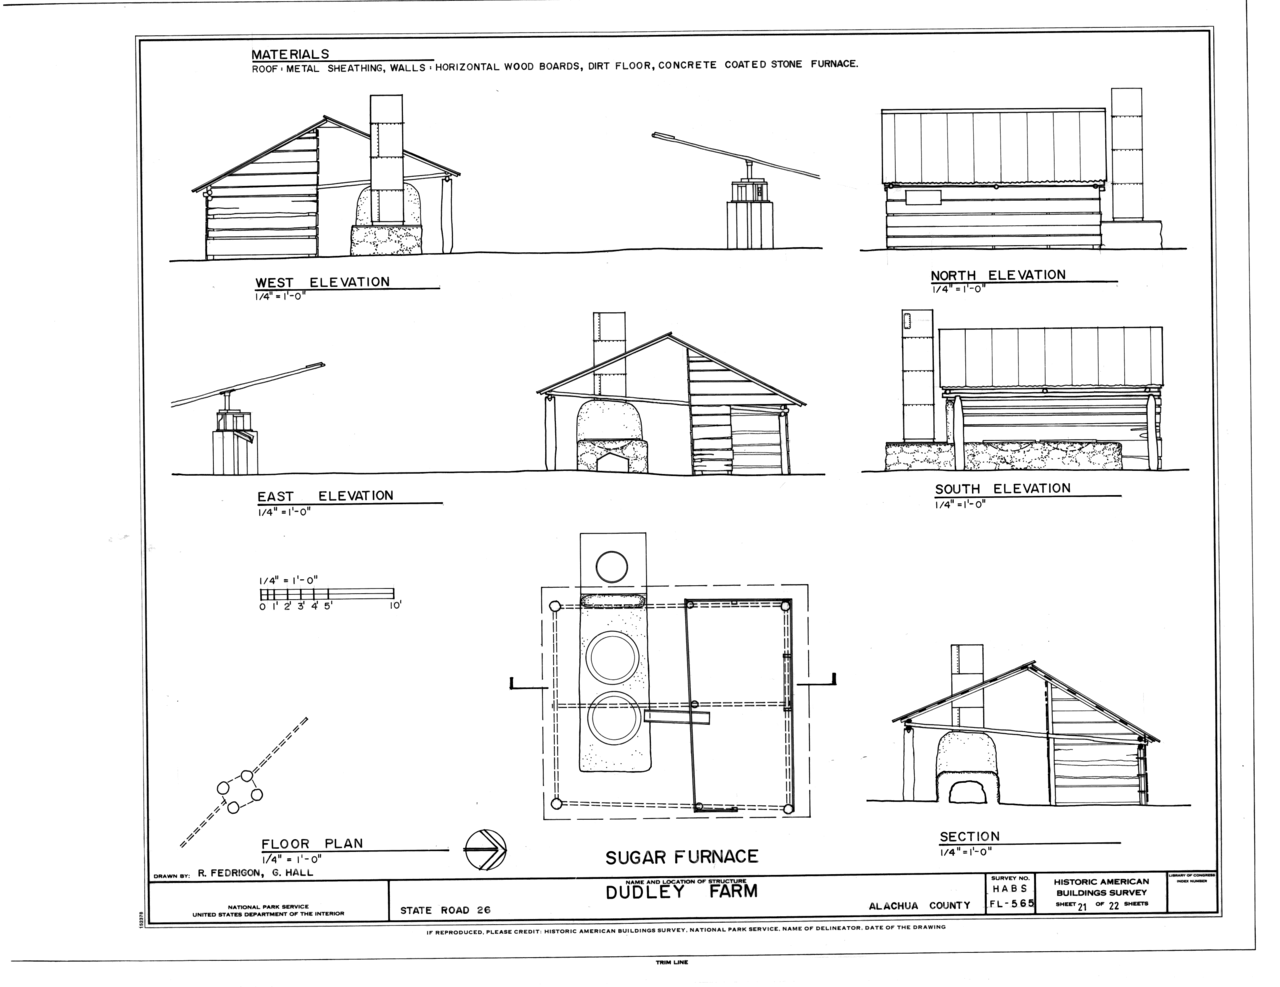 Elevation In Plan : File sugar furnace elevations floor plan and section